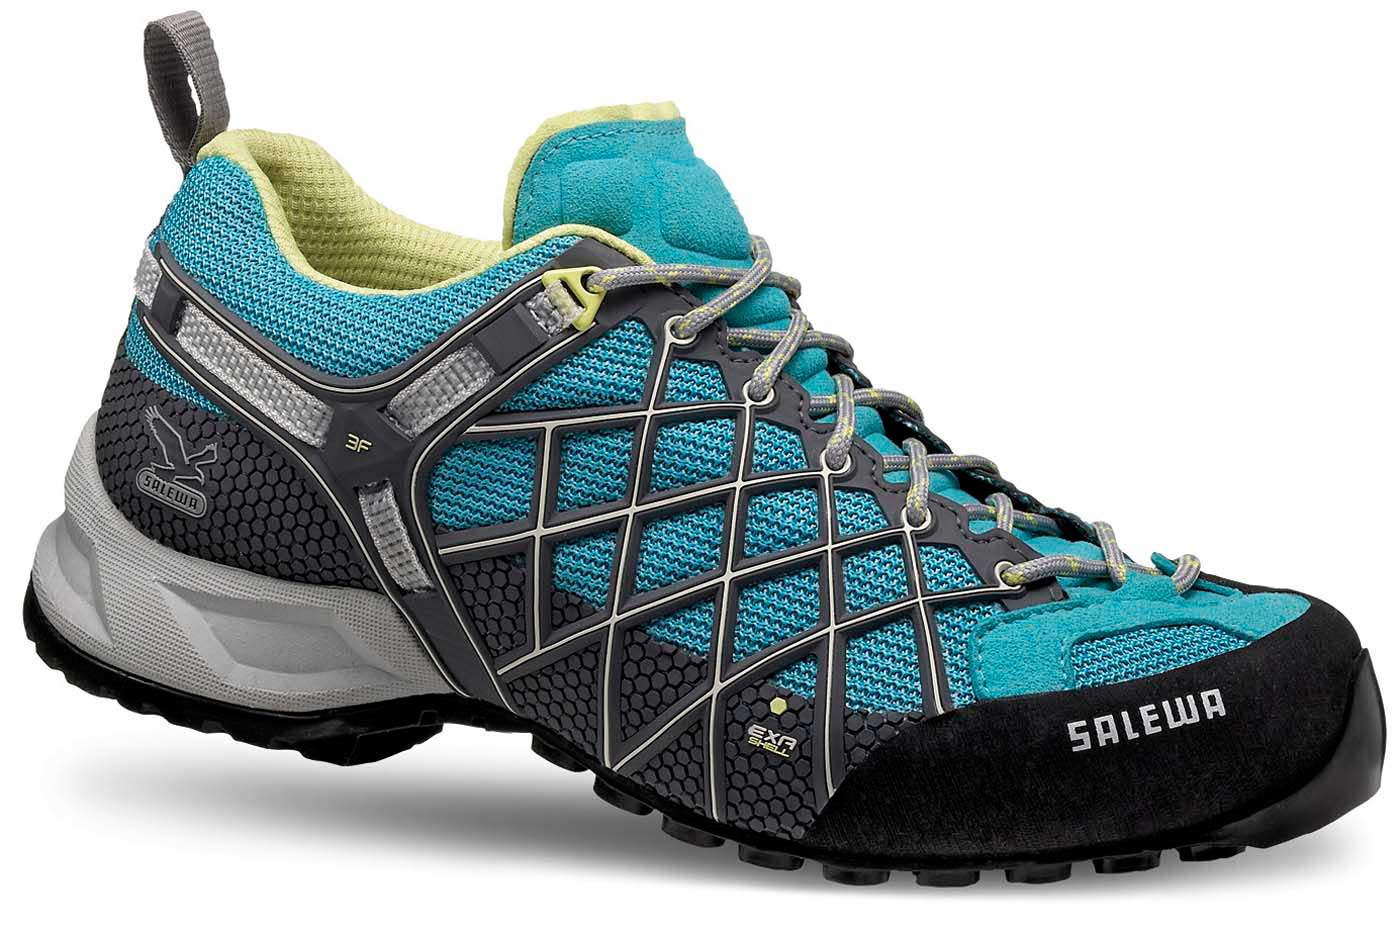 1140 - Salewa Wild Fire GTX Hiking Shoes sale discount price